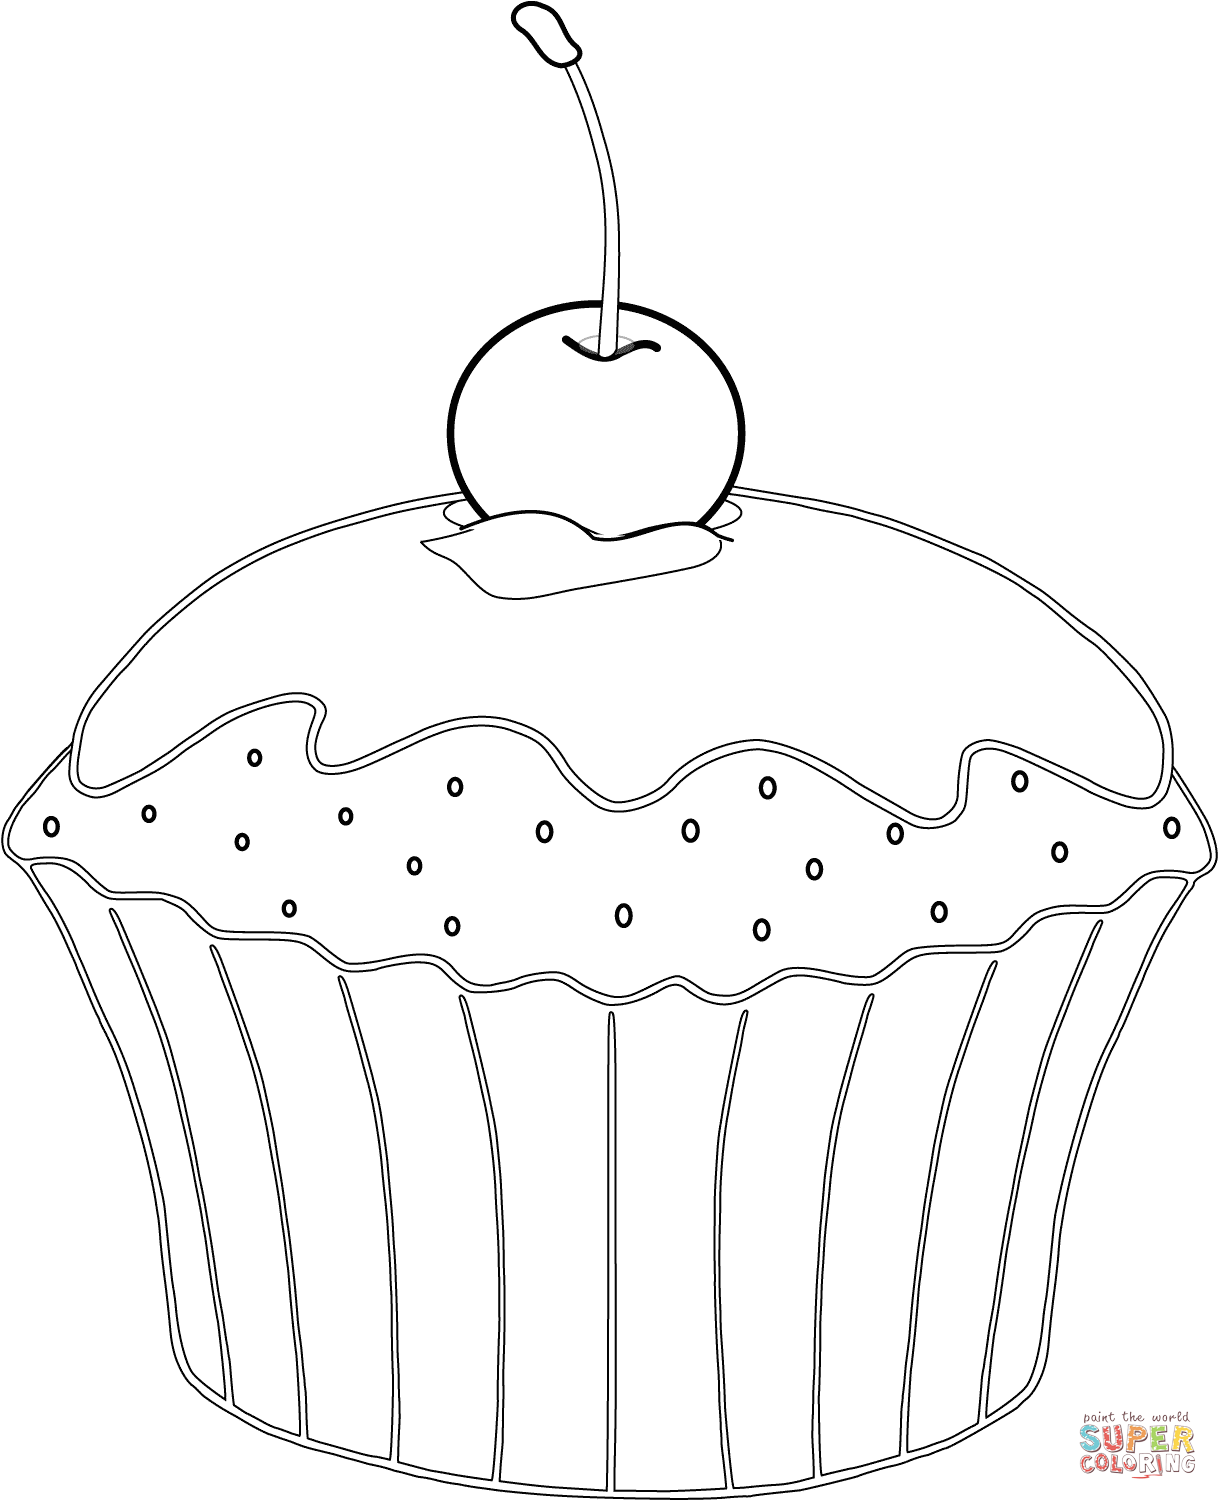 muffin pictures to color muffin coloring pages muffin to color pictures